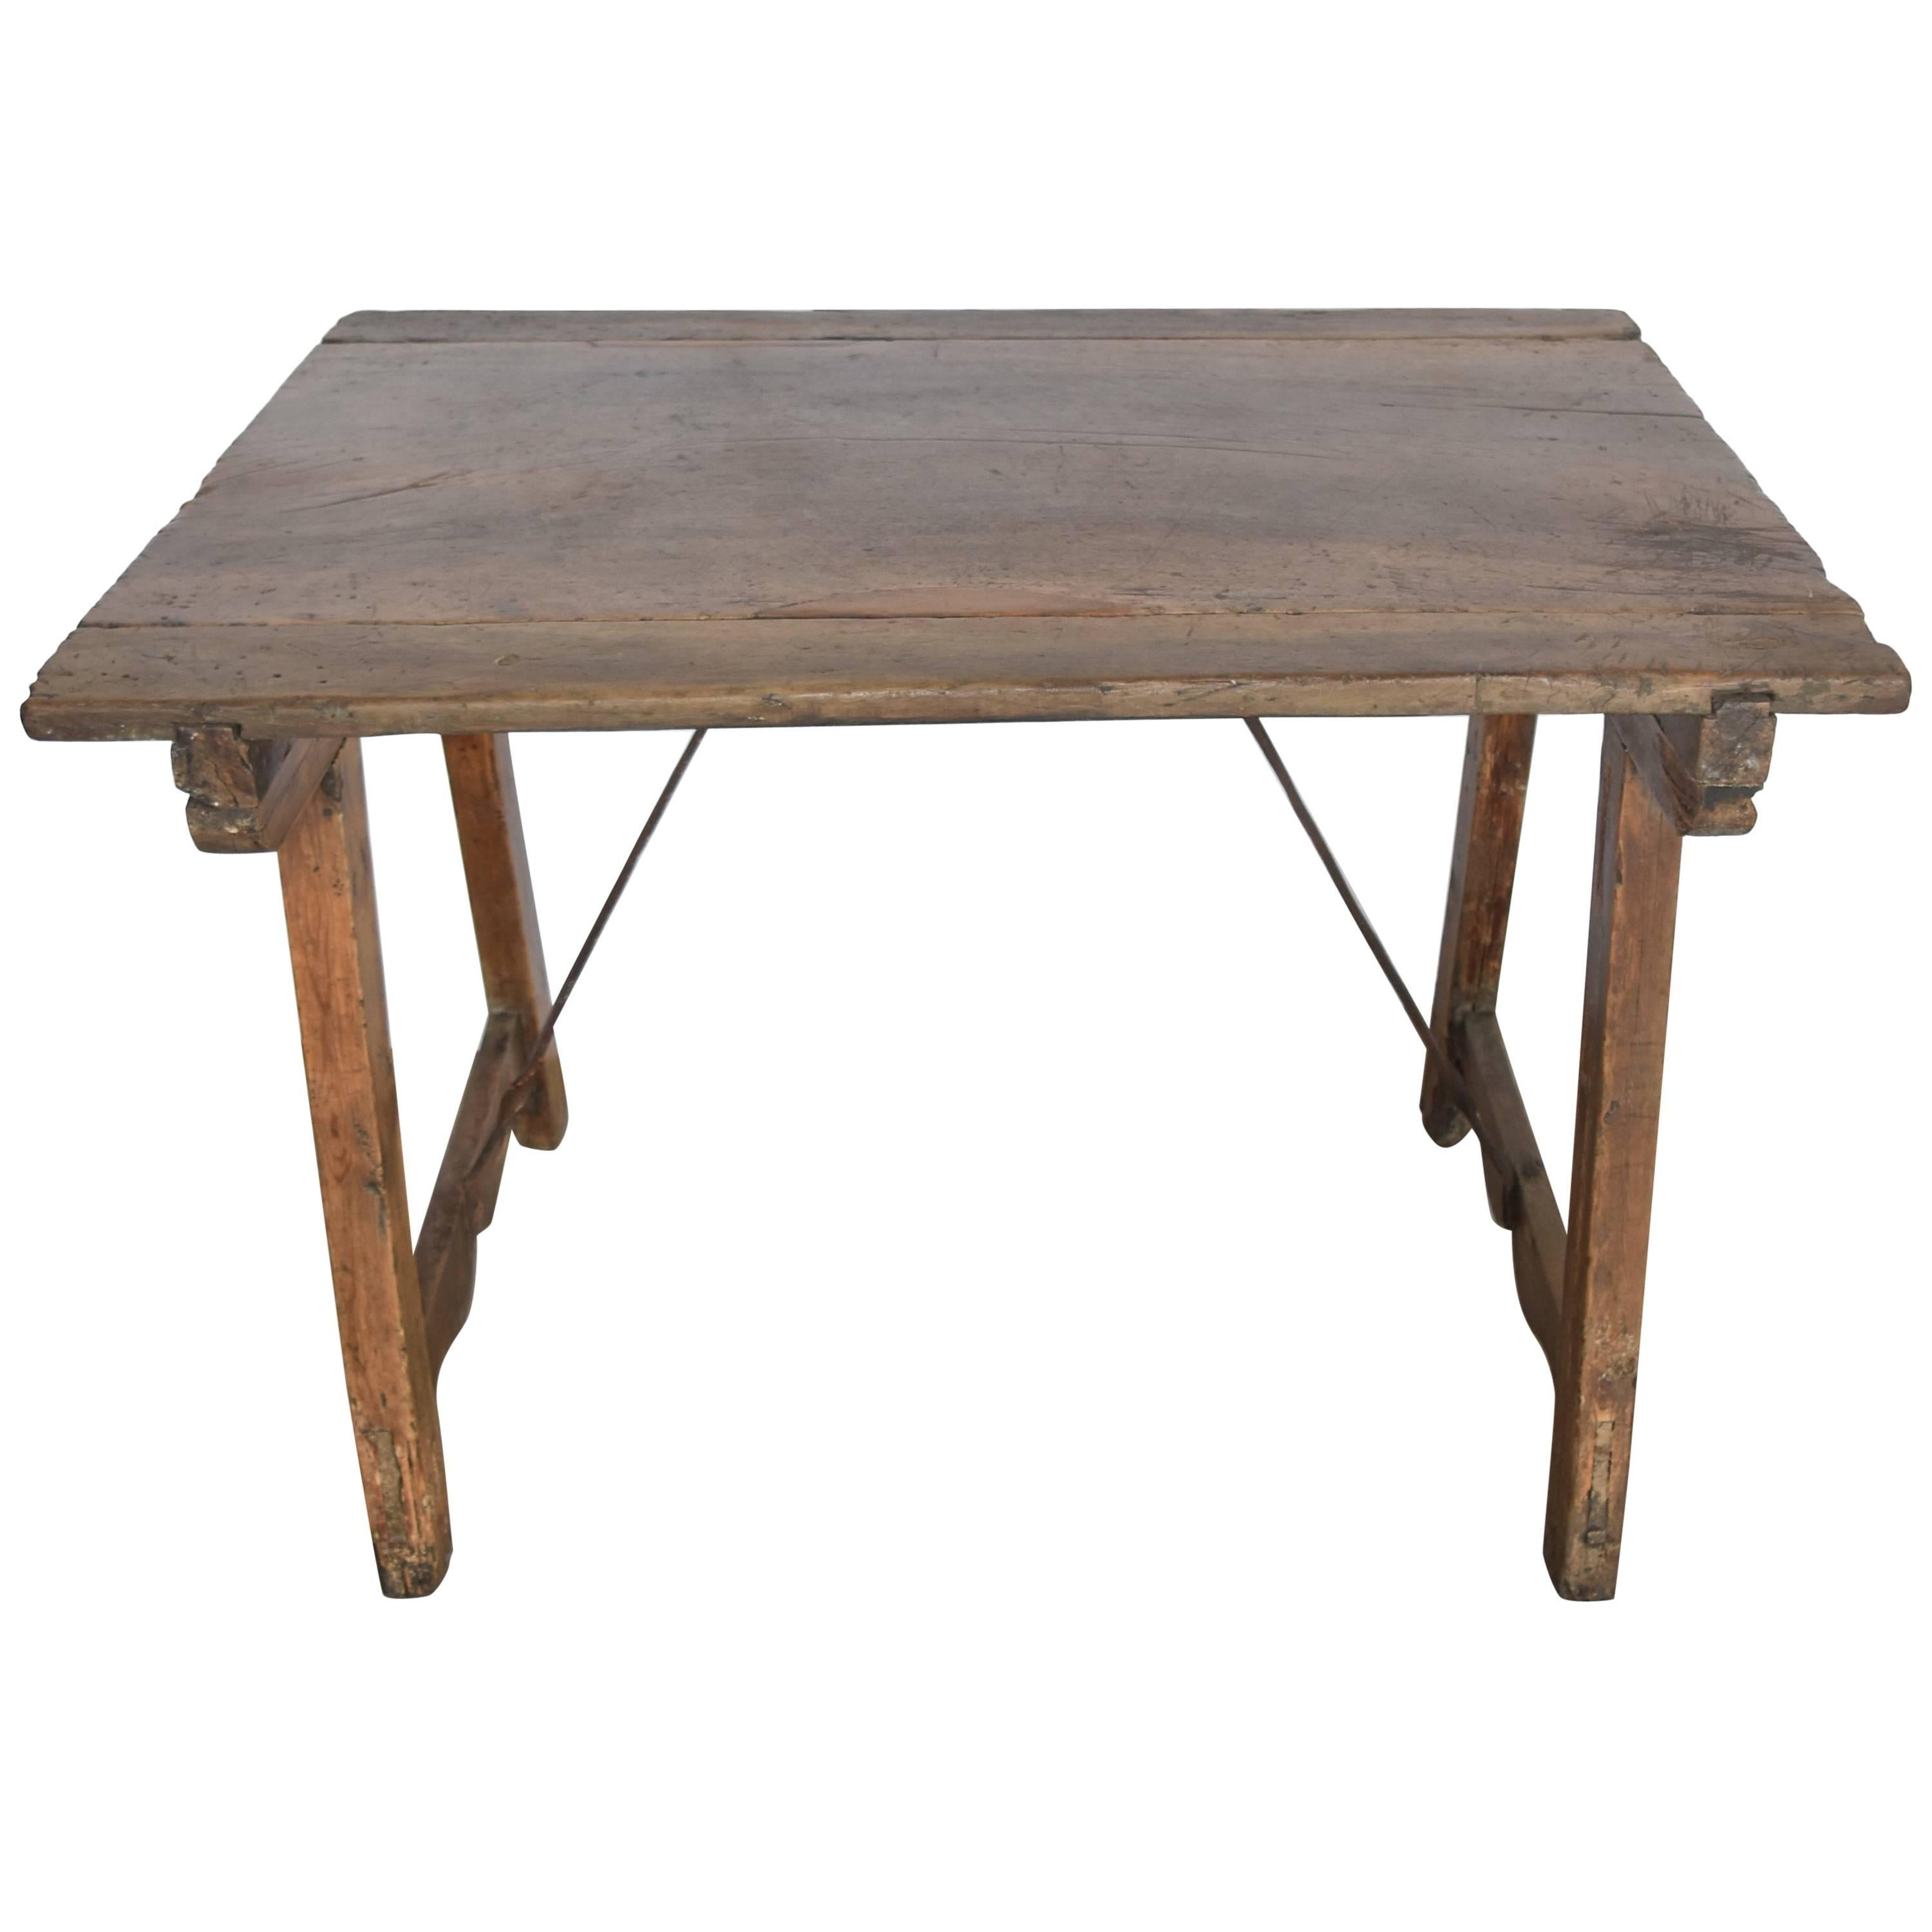 Charmant 18th Century Walnut Spanish Side Table Or Desk With Iron Stretcher